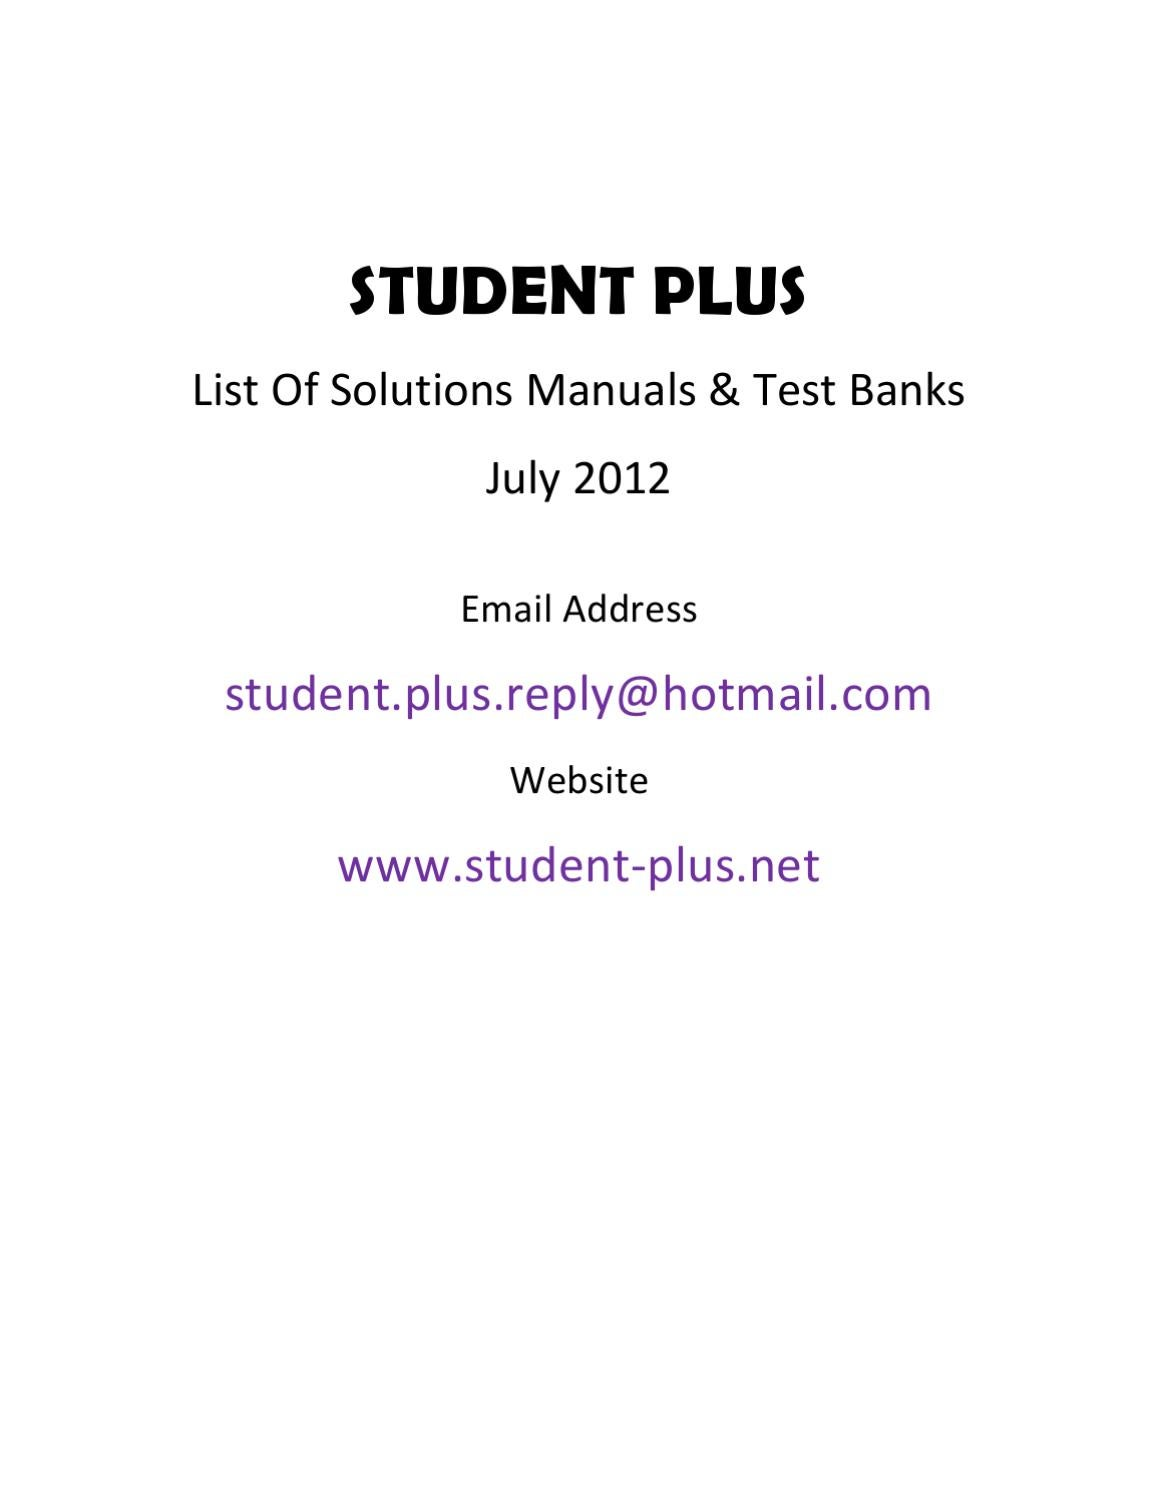 Solution Manuals & Test Banks List - July 2012 by Student Plus Net - issuu